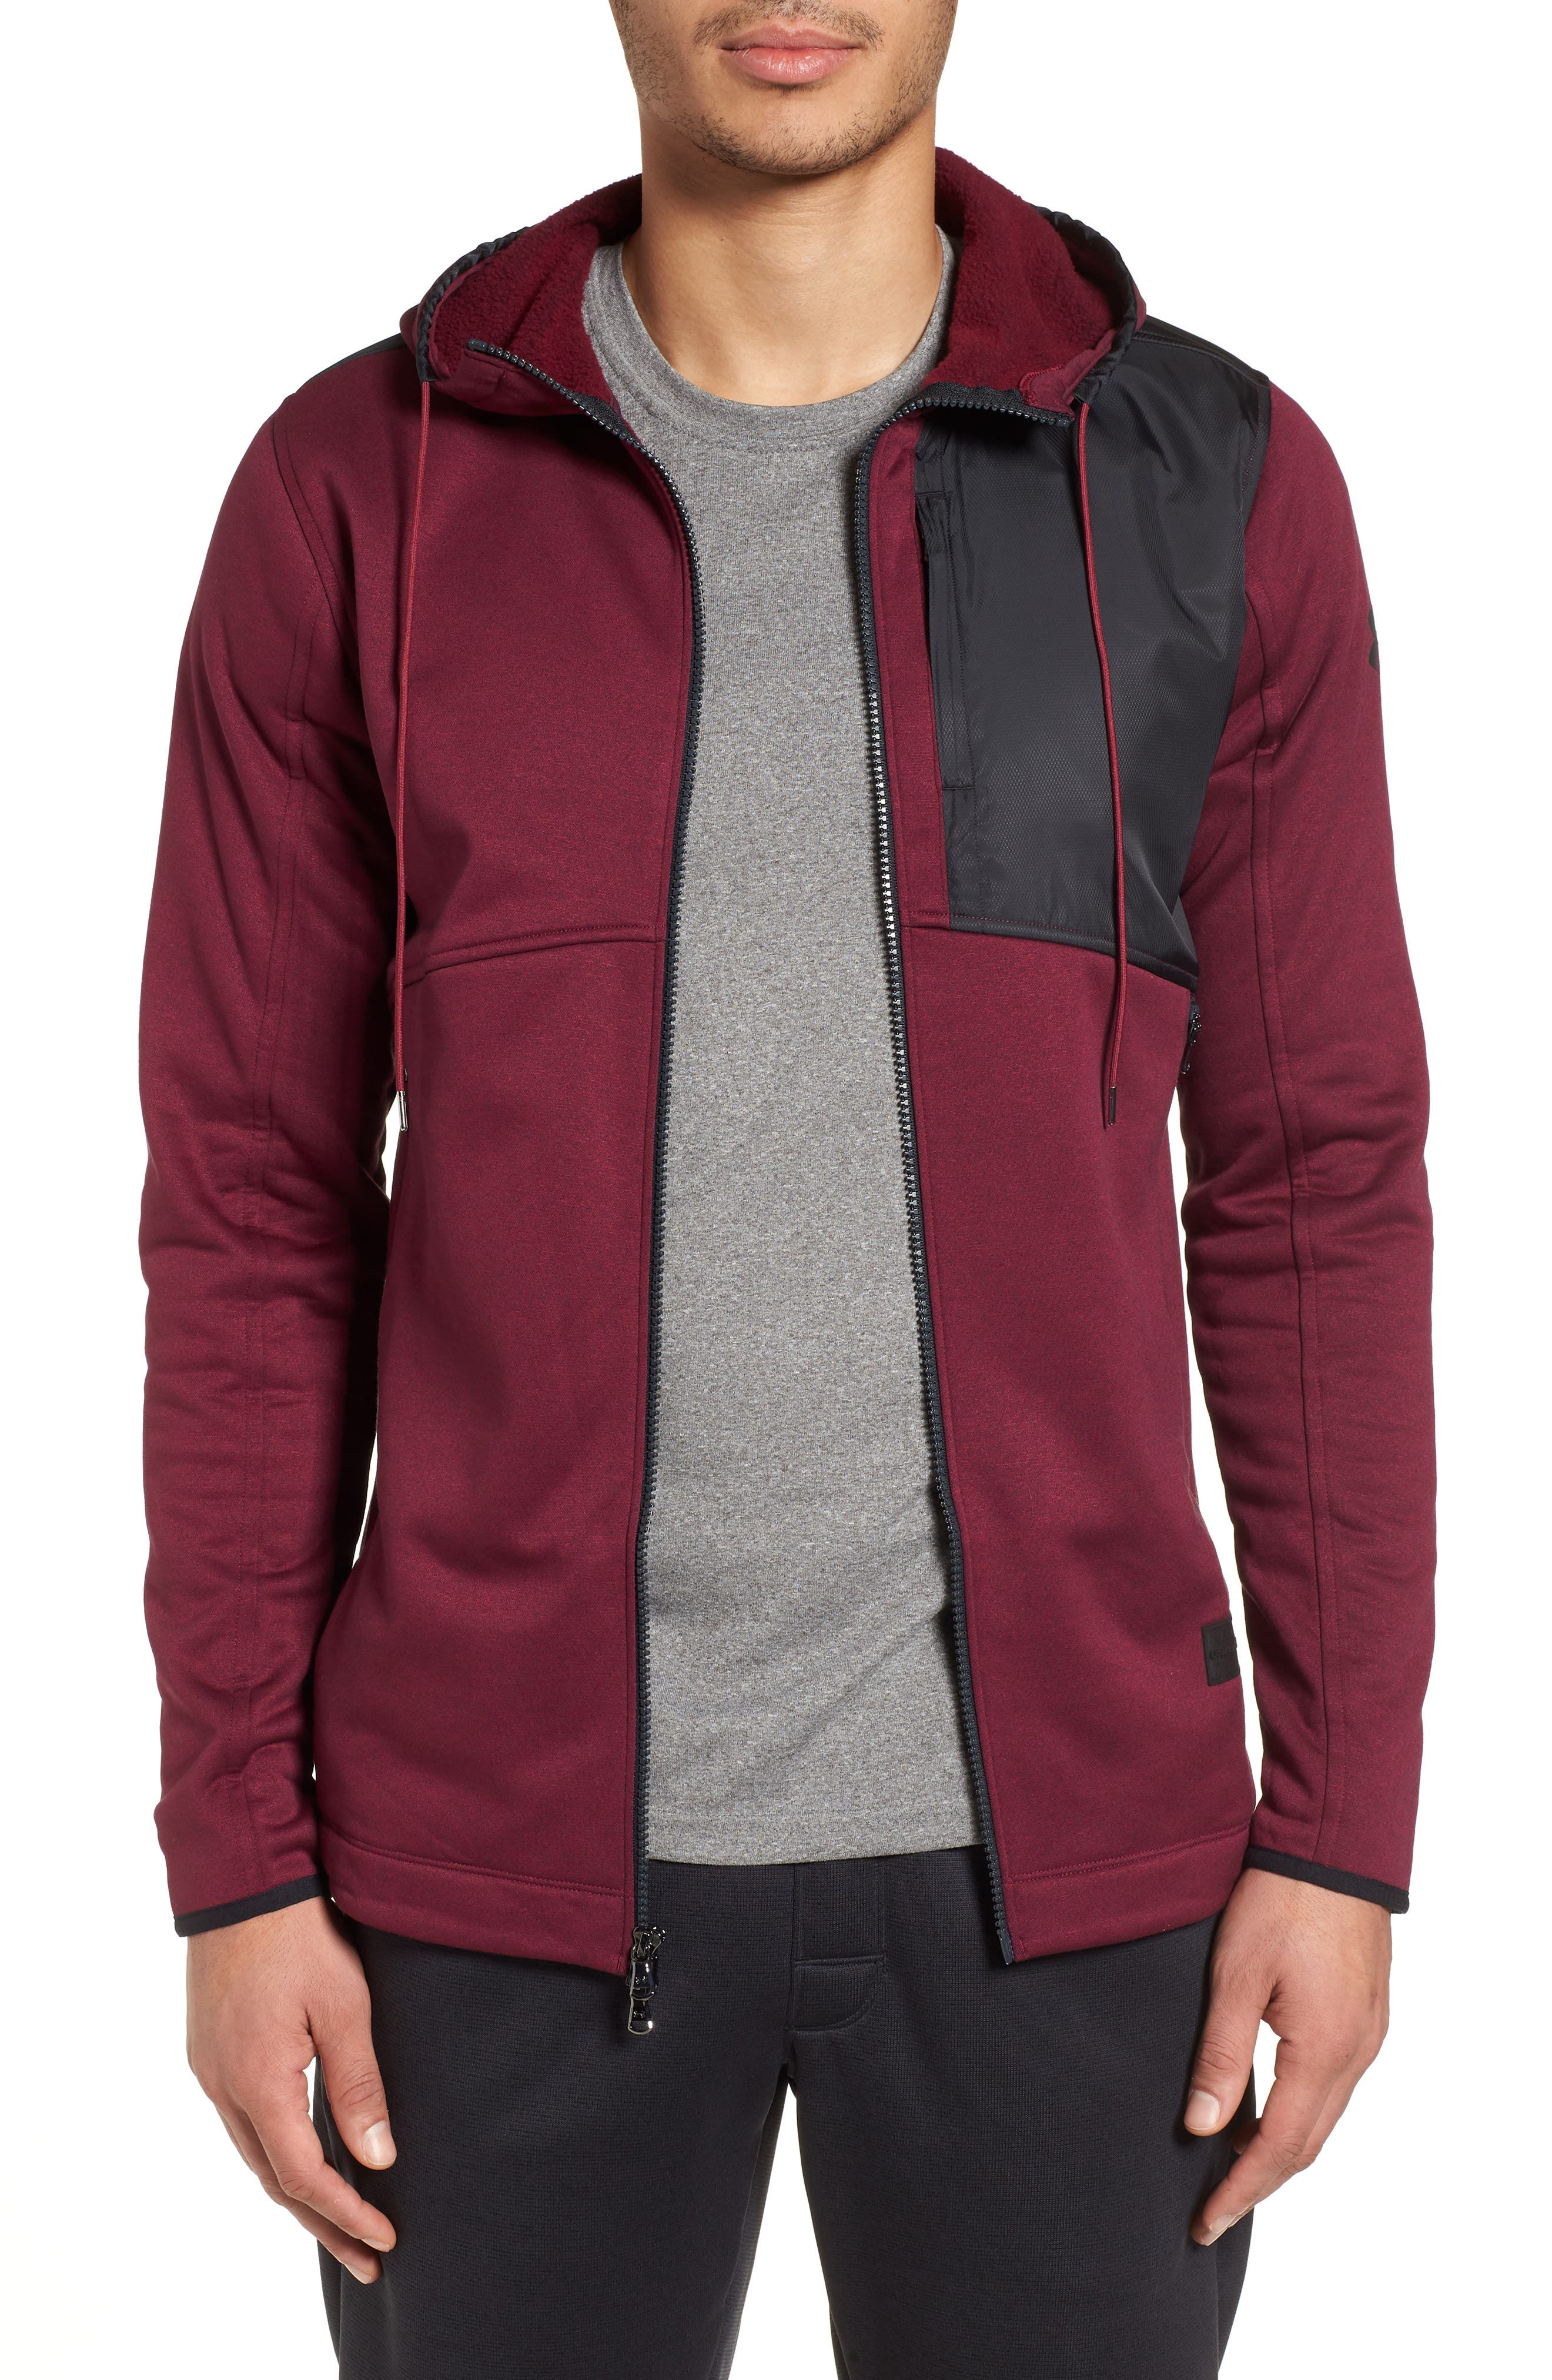 Courtside Stealth Zip Hoodie,                         Main,                         color, Black Currant / Black